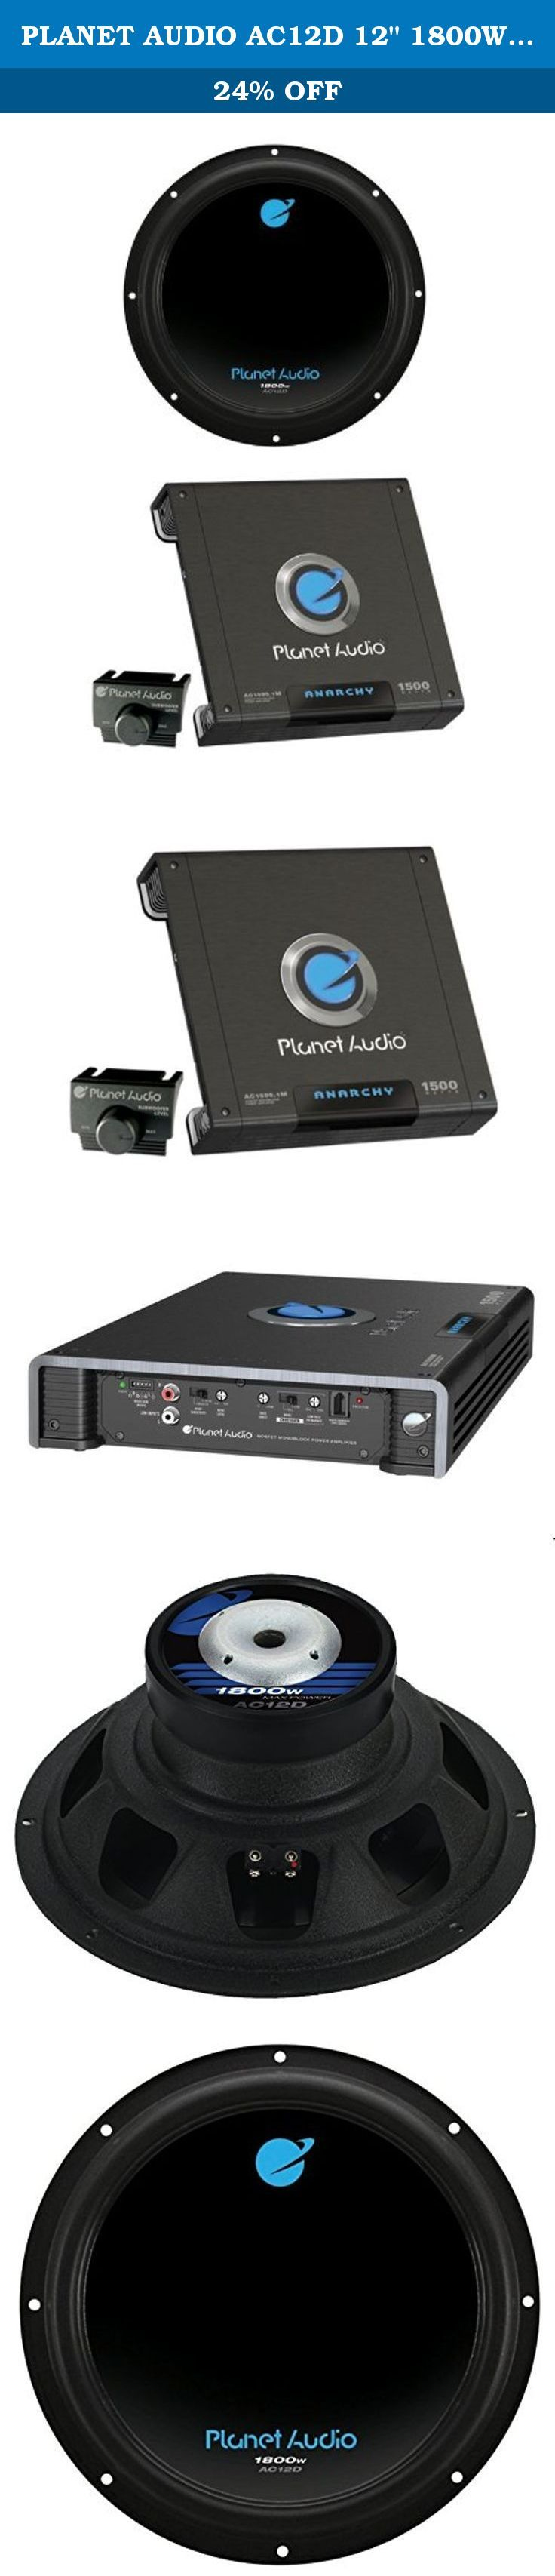 "PLANET AUDIO AC12D 12"" 1800W Car Audio Subwoofer + AC15001M 1500W MONO Amplifier. Package Includes: 1 x Planet Audio AC12D 12"" 1800W Car Subwoofers 1 x Planet Audio AC15001M 1500W Mono Car Amplifier ----- The PLANET AUDIO AC12D 12"" 1800W Dual 4-Ohm Voice Coil Car Audio Subwoofer can handle 1800 Watts of MAX power and 900 Watts of RMS power. Thump your car audio system with these AC12D subwoofers! The PLANET AUDIO AC1500.1M 1500W MONOBLOCK Car Audio Amplifier can handle 1500 Watts of MAX..."